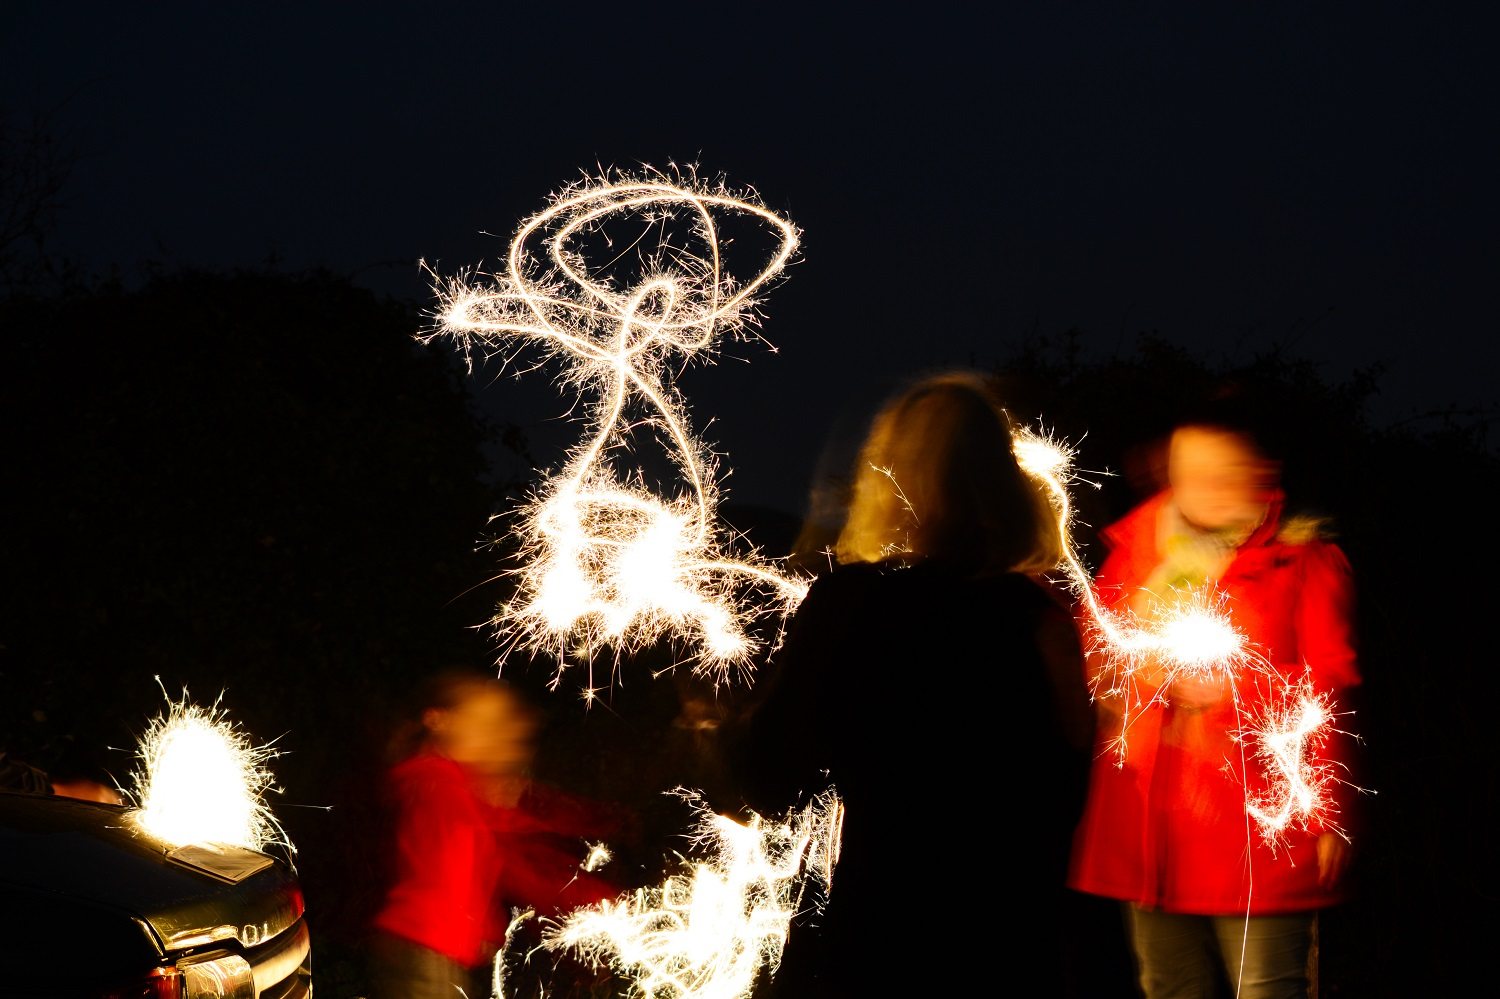 sparklers-party-bonfire-night